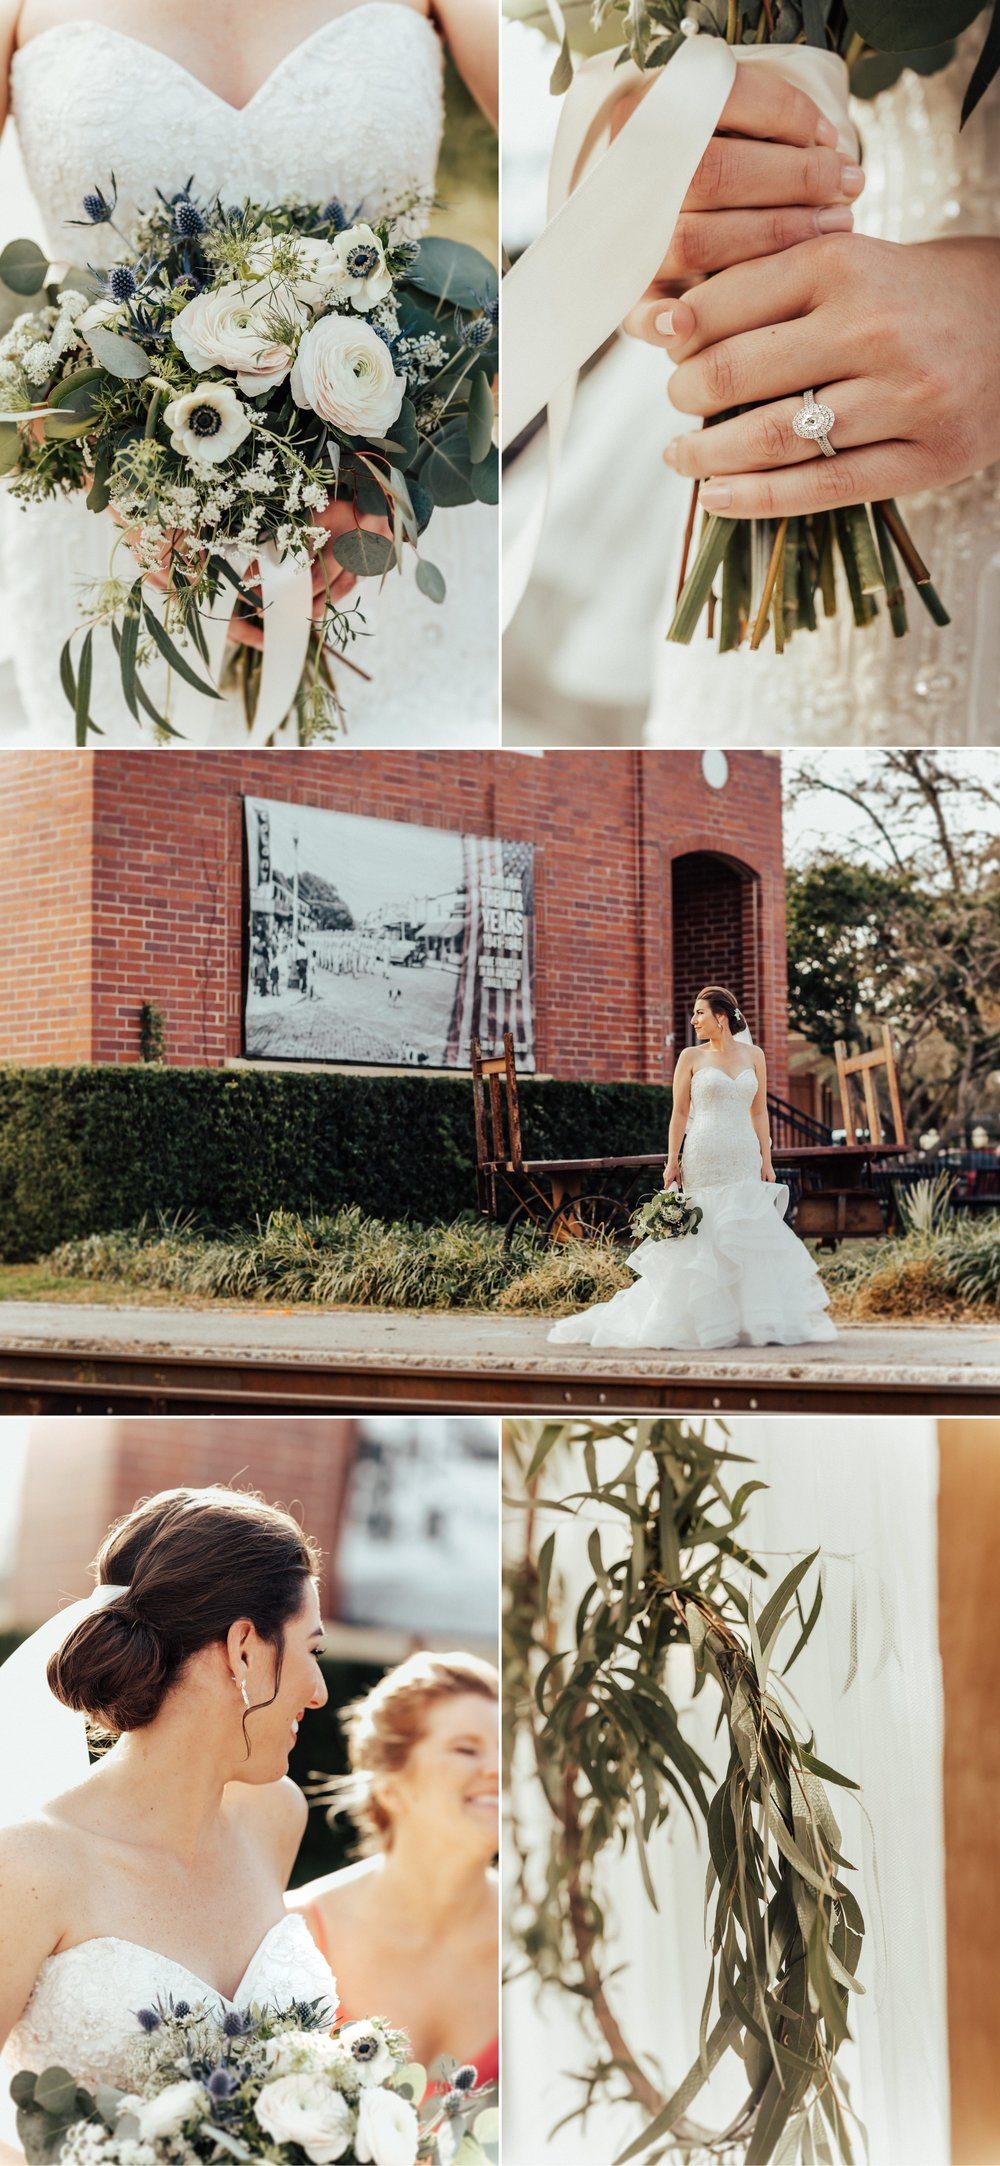 Winter Park Farmers Market wedding Over the Moon Events- Rustic Chic French Market Wedding Photography9.jpg